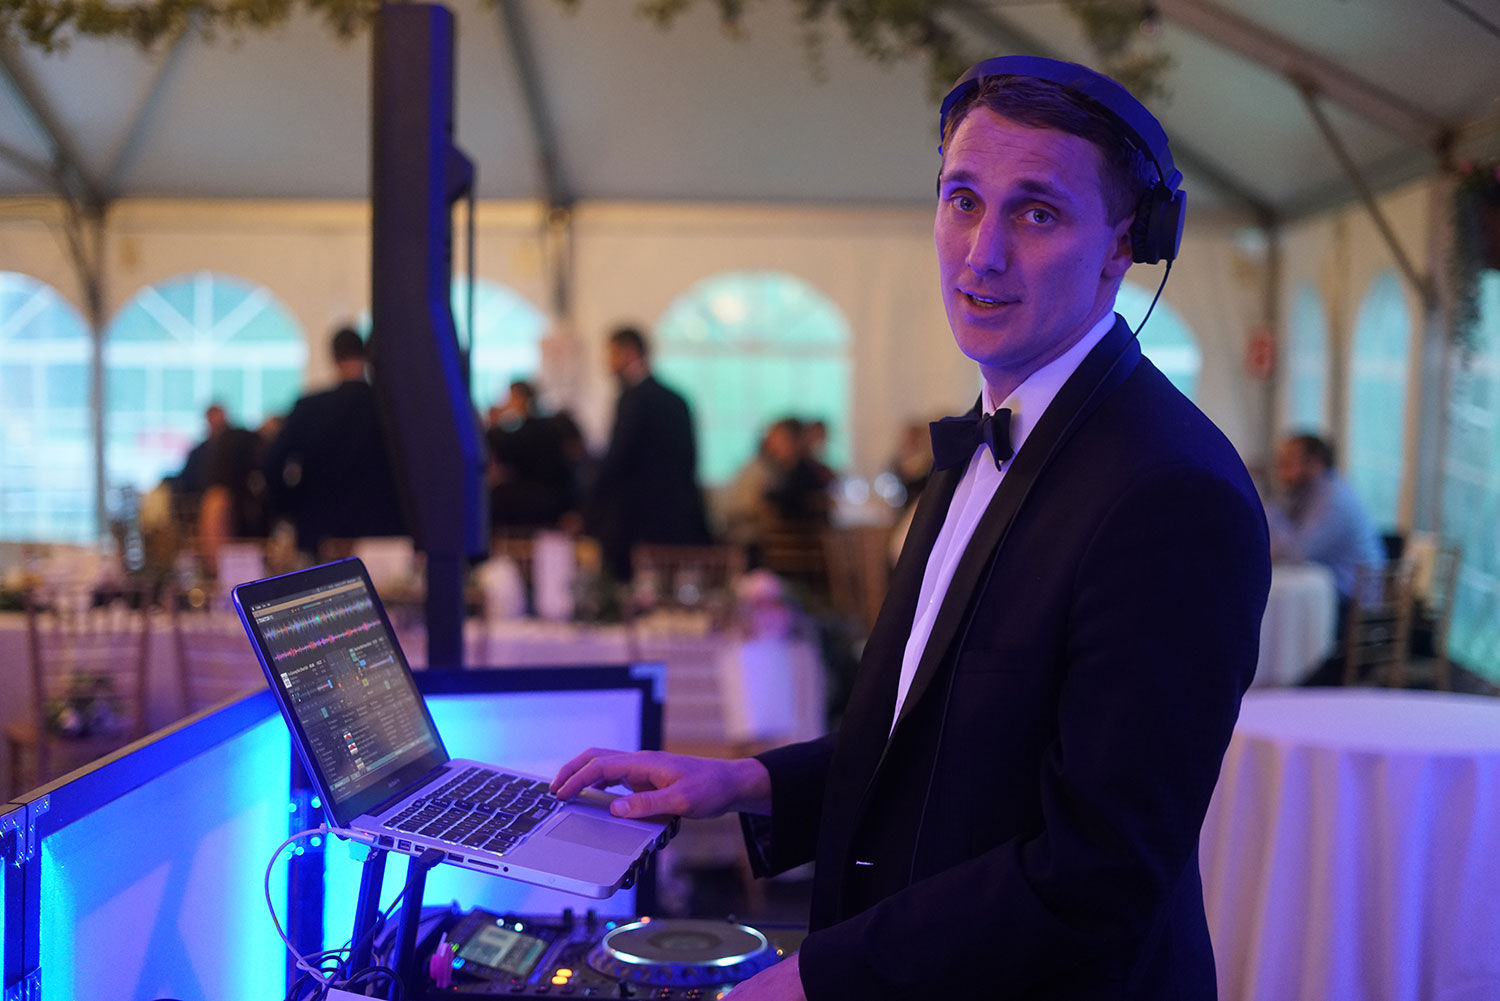 wedding-dj-nyc-vosters-brooklyn-best.jpg